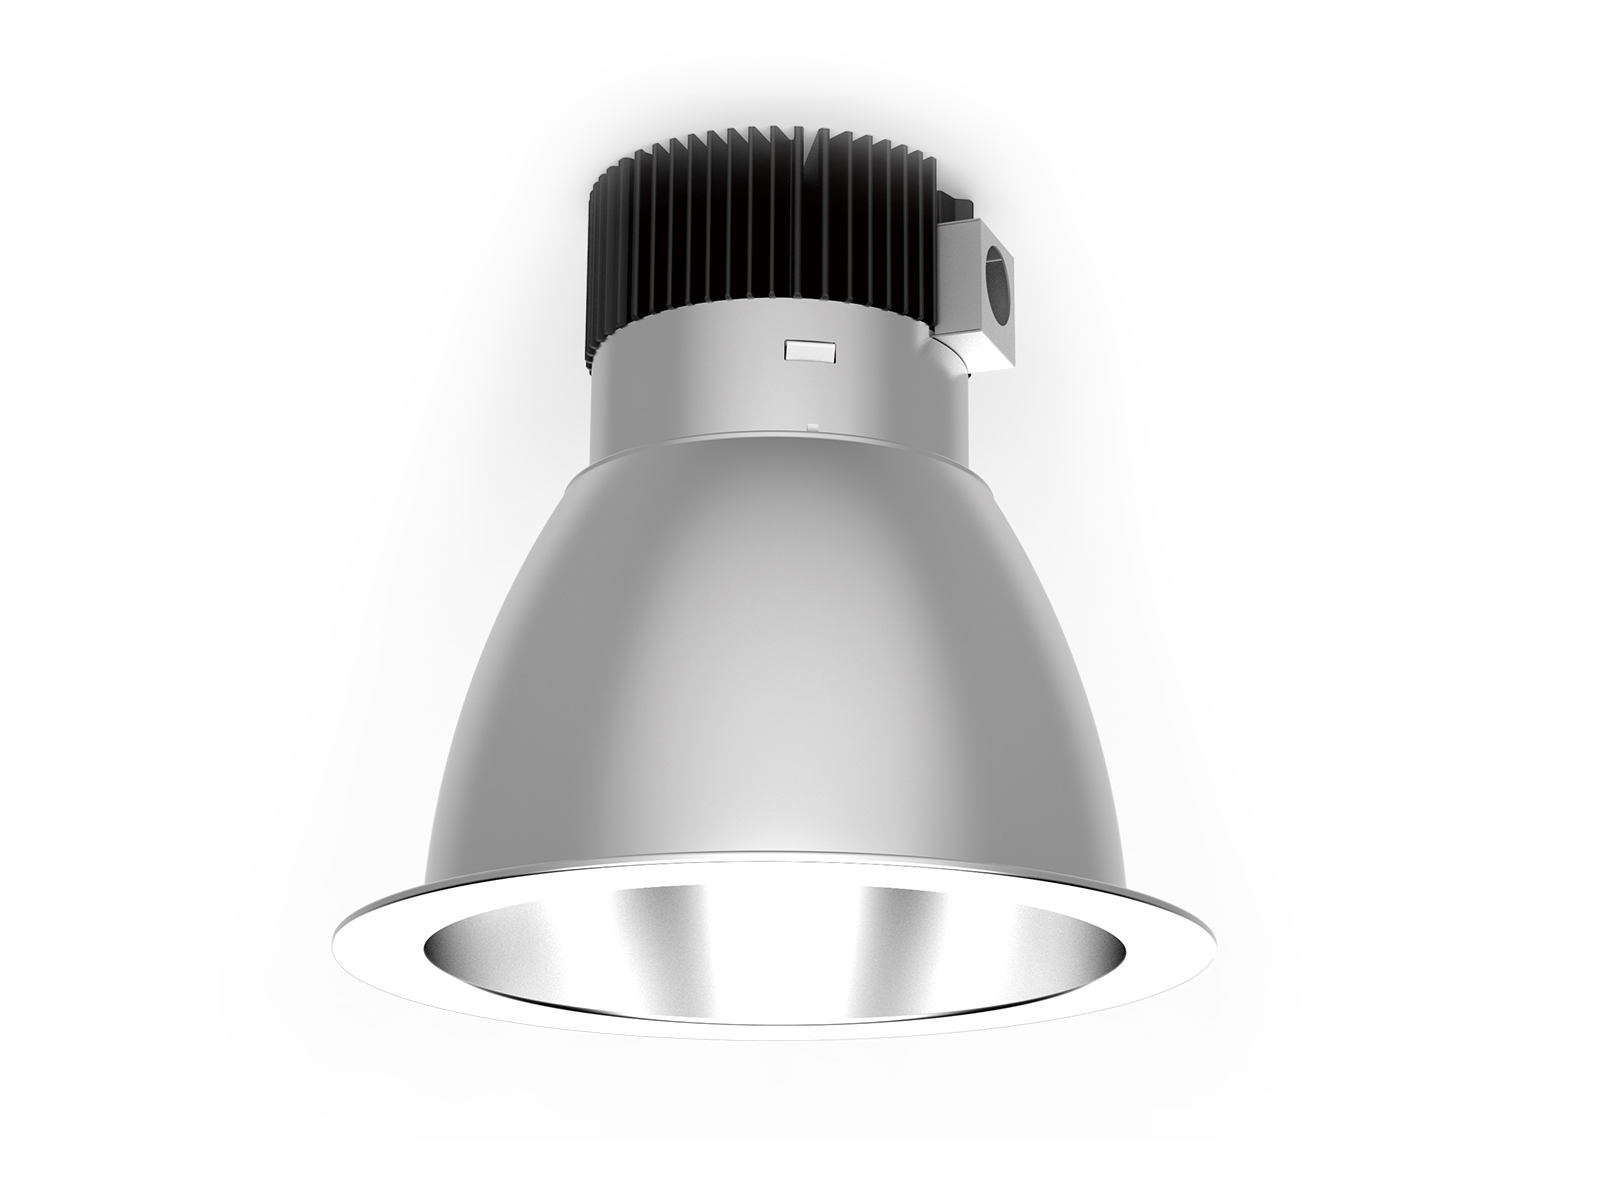 DL36 LED Downlight